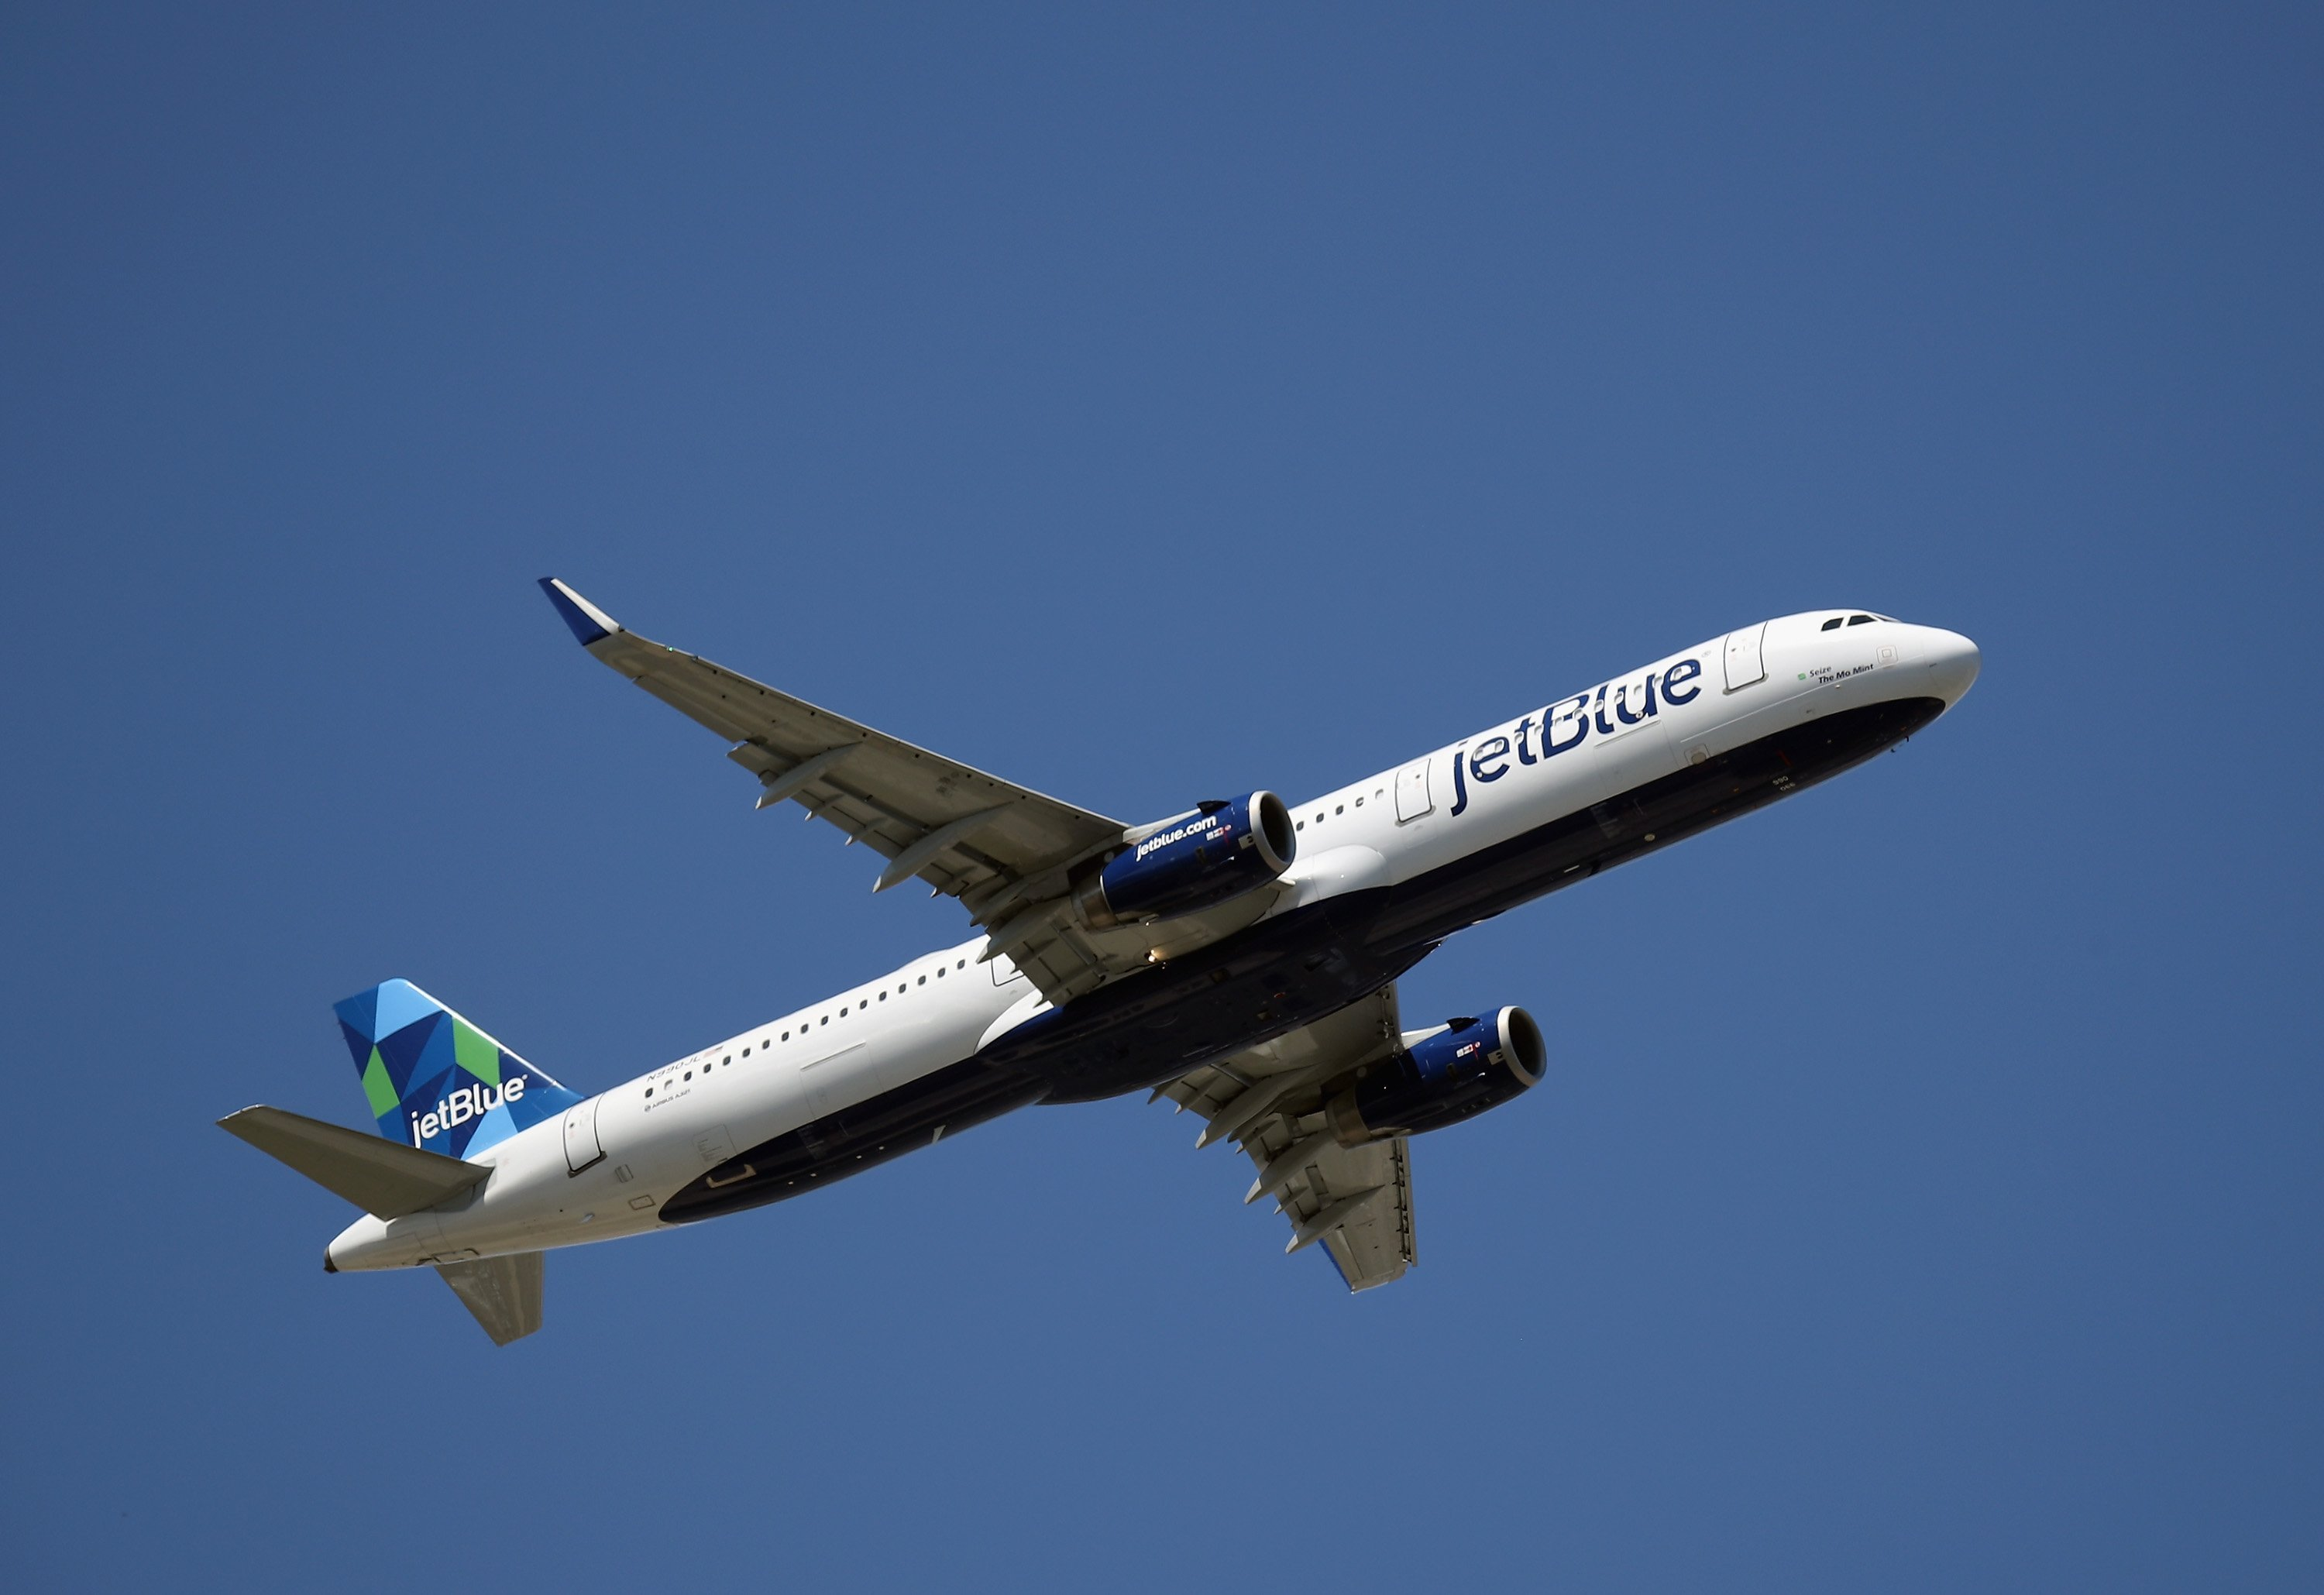 JetBlue is rolling out cheaper fares. But there's a catch